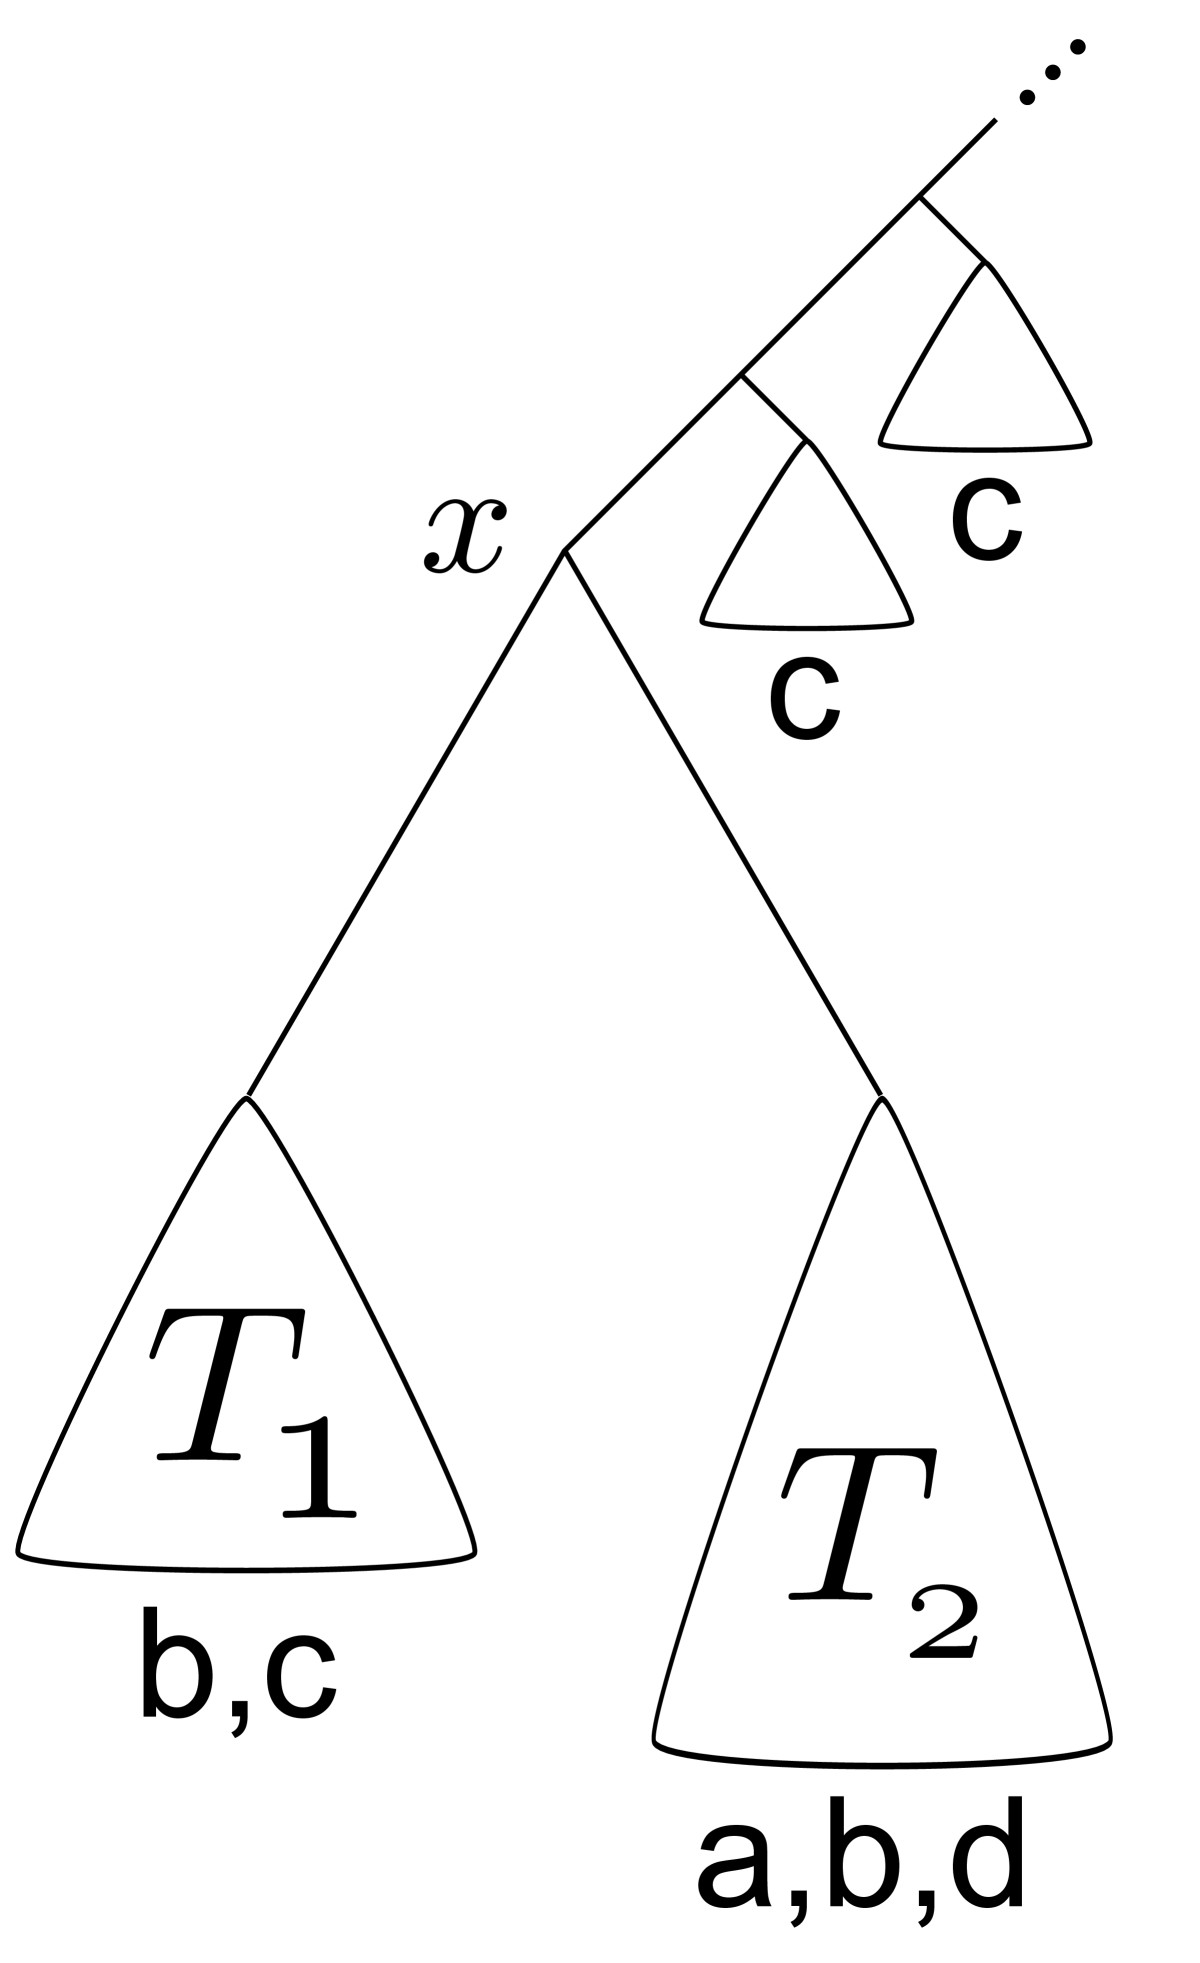 http://static-content.springer.com/image/art%3A10.1186%2F1748-7188-7-8/MediaObjects/13015_2011_Article_148_Fig3_HTML.jpg